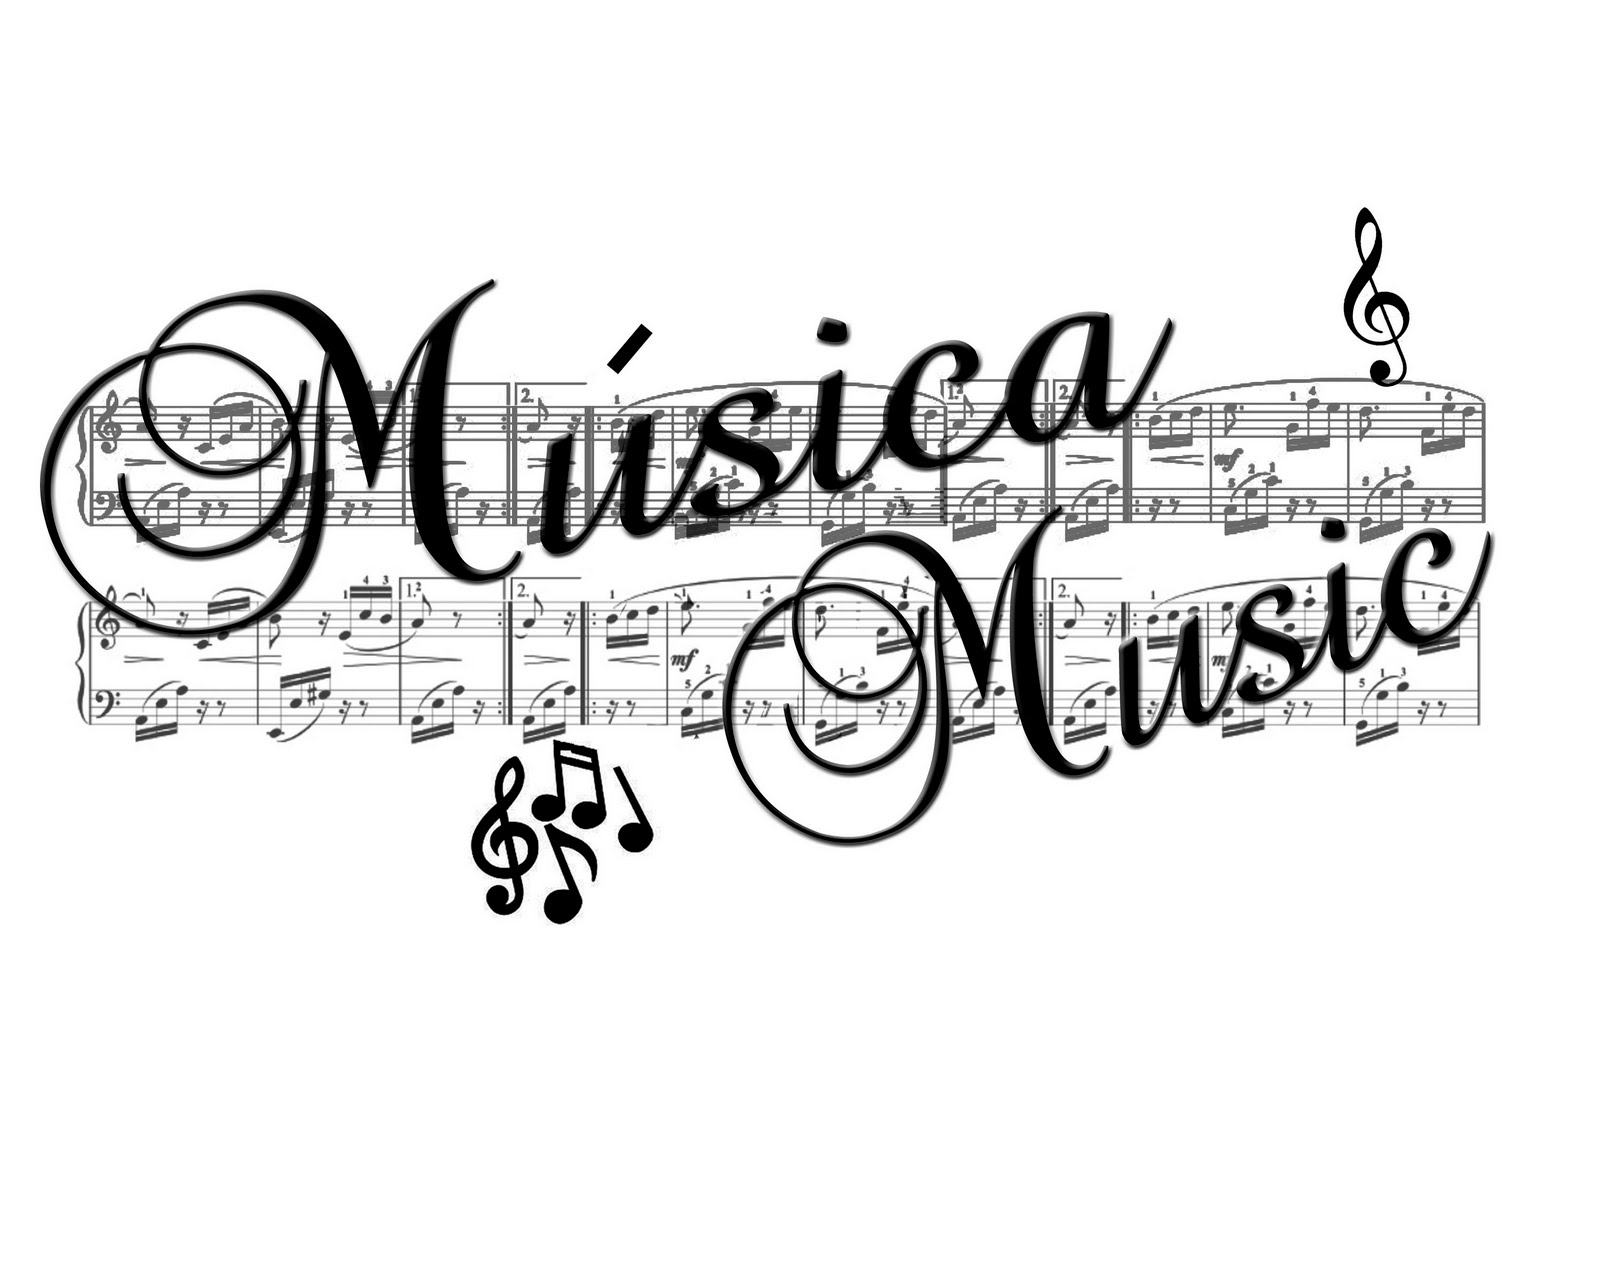 Musica ayudas visuales music visual aids